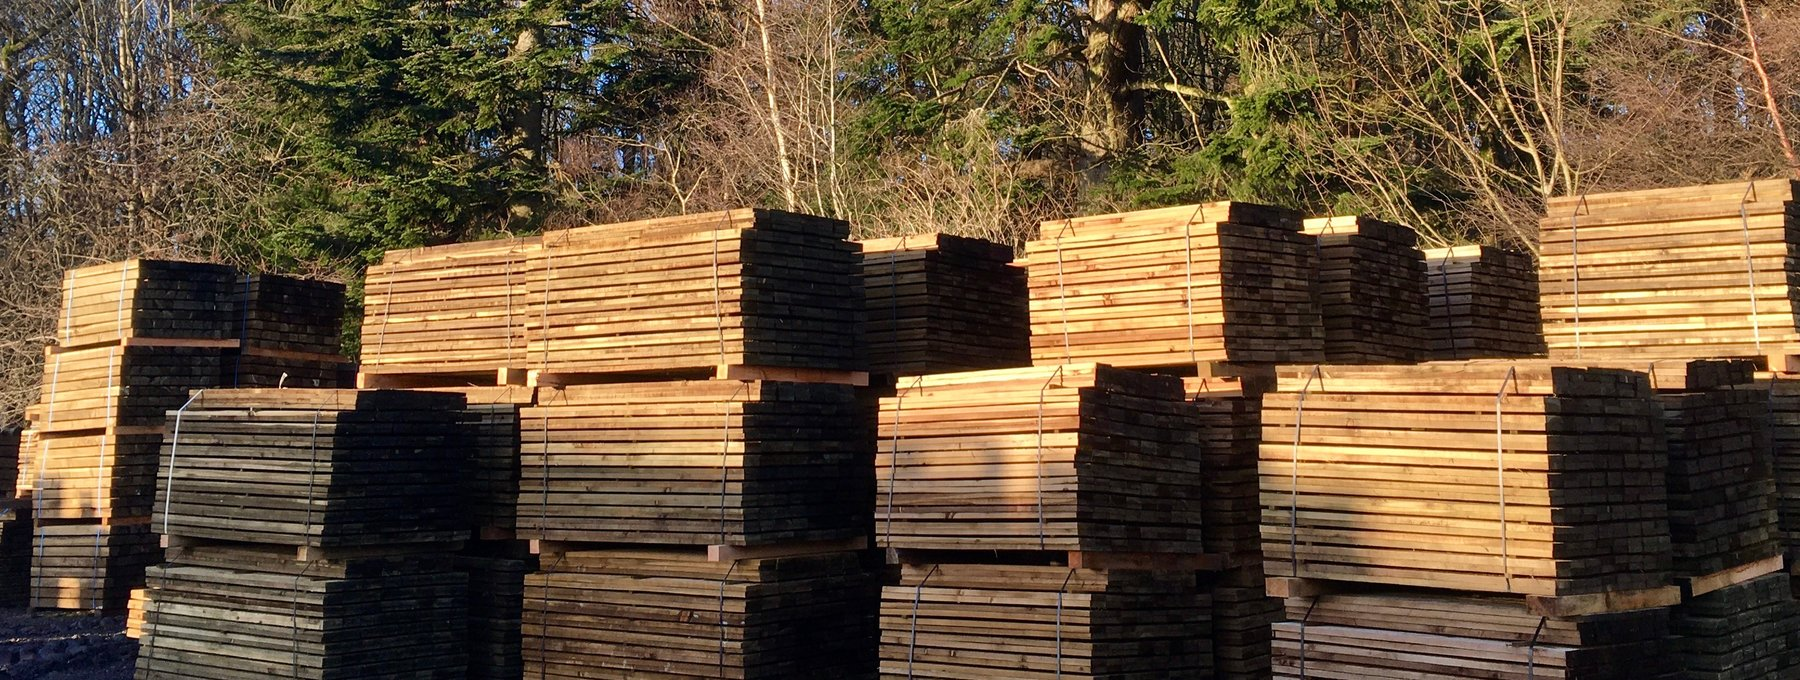 Murthly Sawmill stacked fencing products - Top-quality fencing products from  Murthly Sawmill (© Murthly Estate)